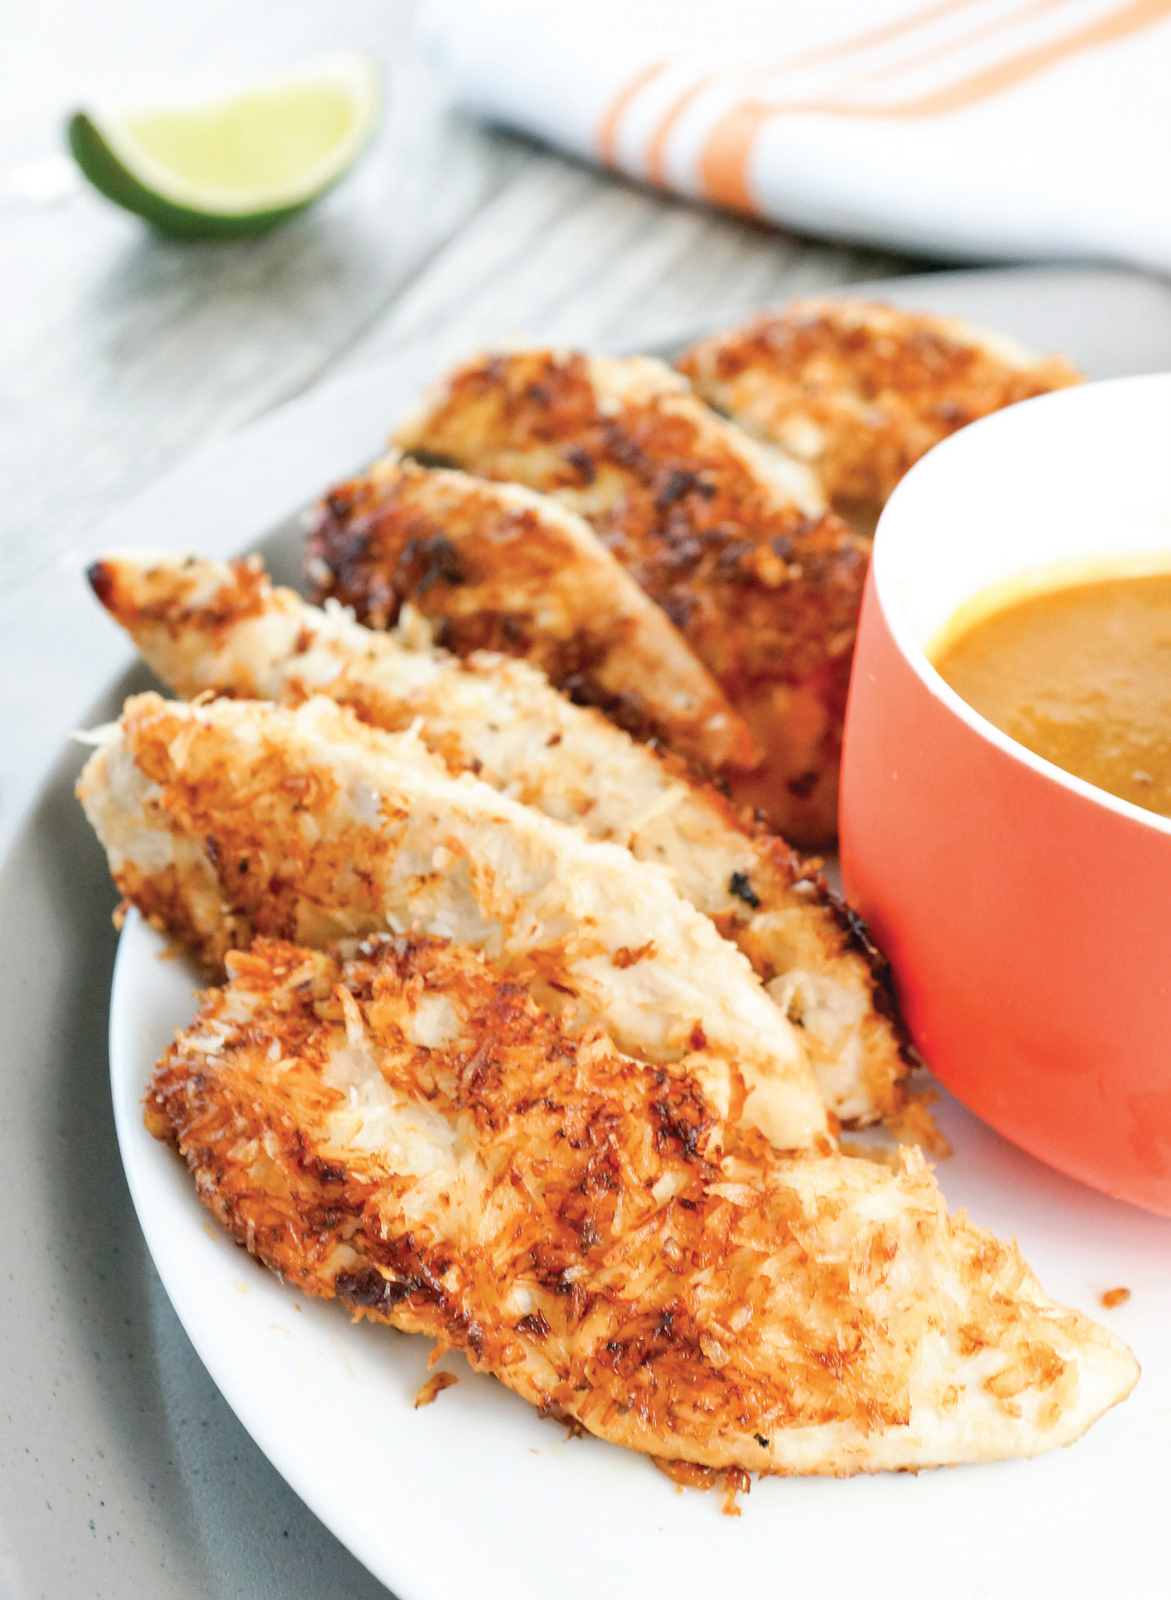 Coconut-Crusted Chicken Tenders with Pineapple Dipping Sauce | Sample Recipe from Healing Kitchen Cookbook